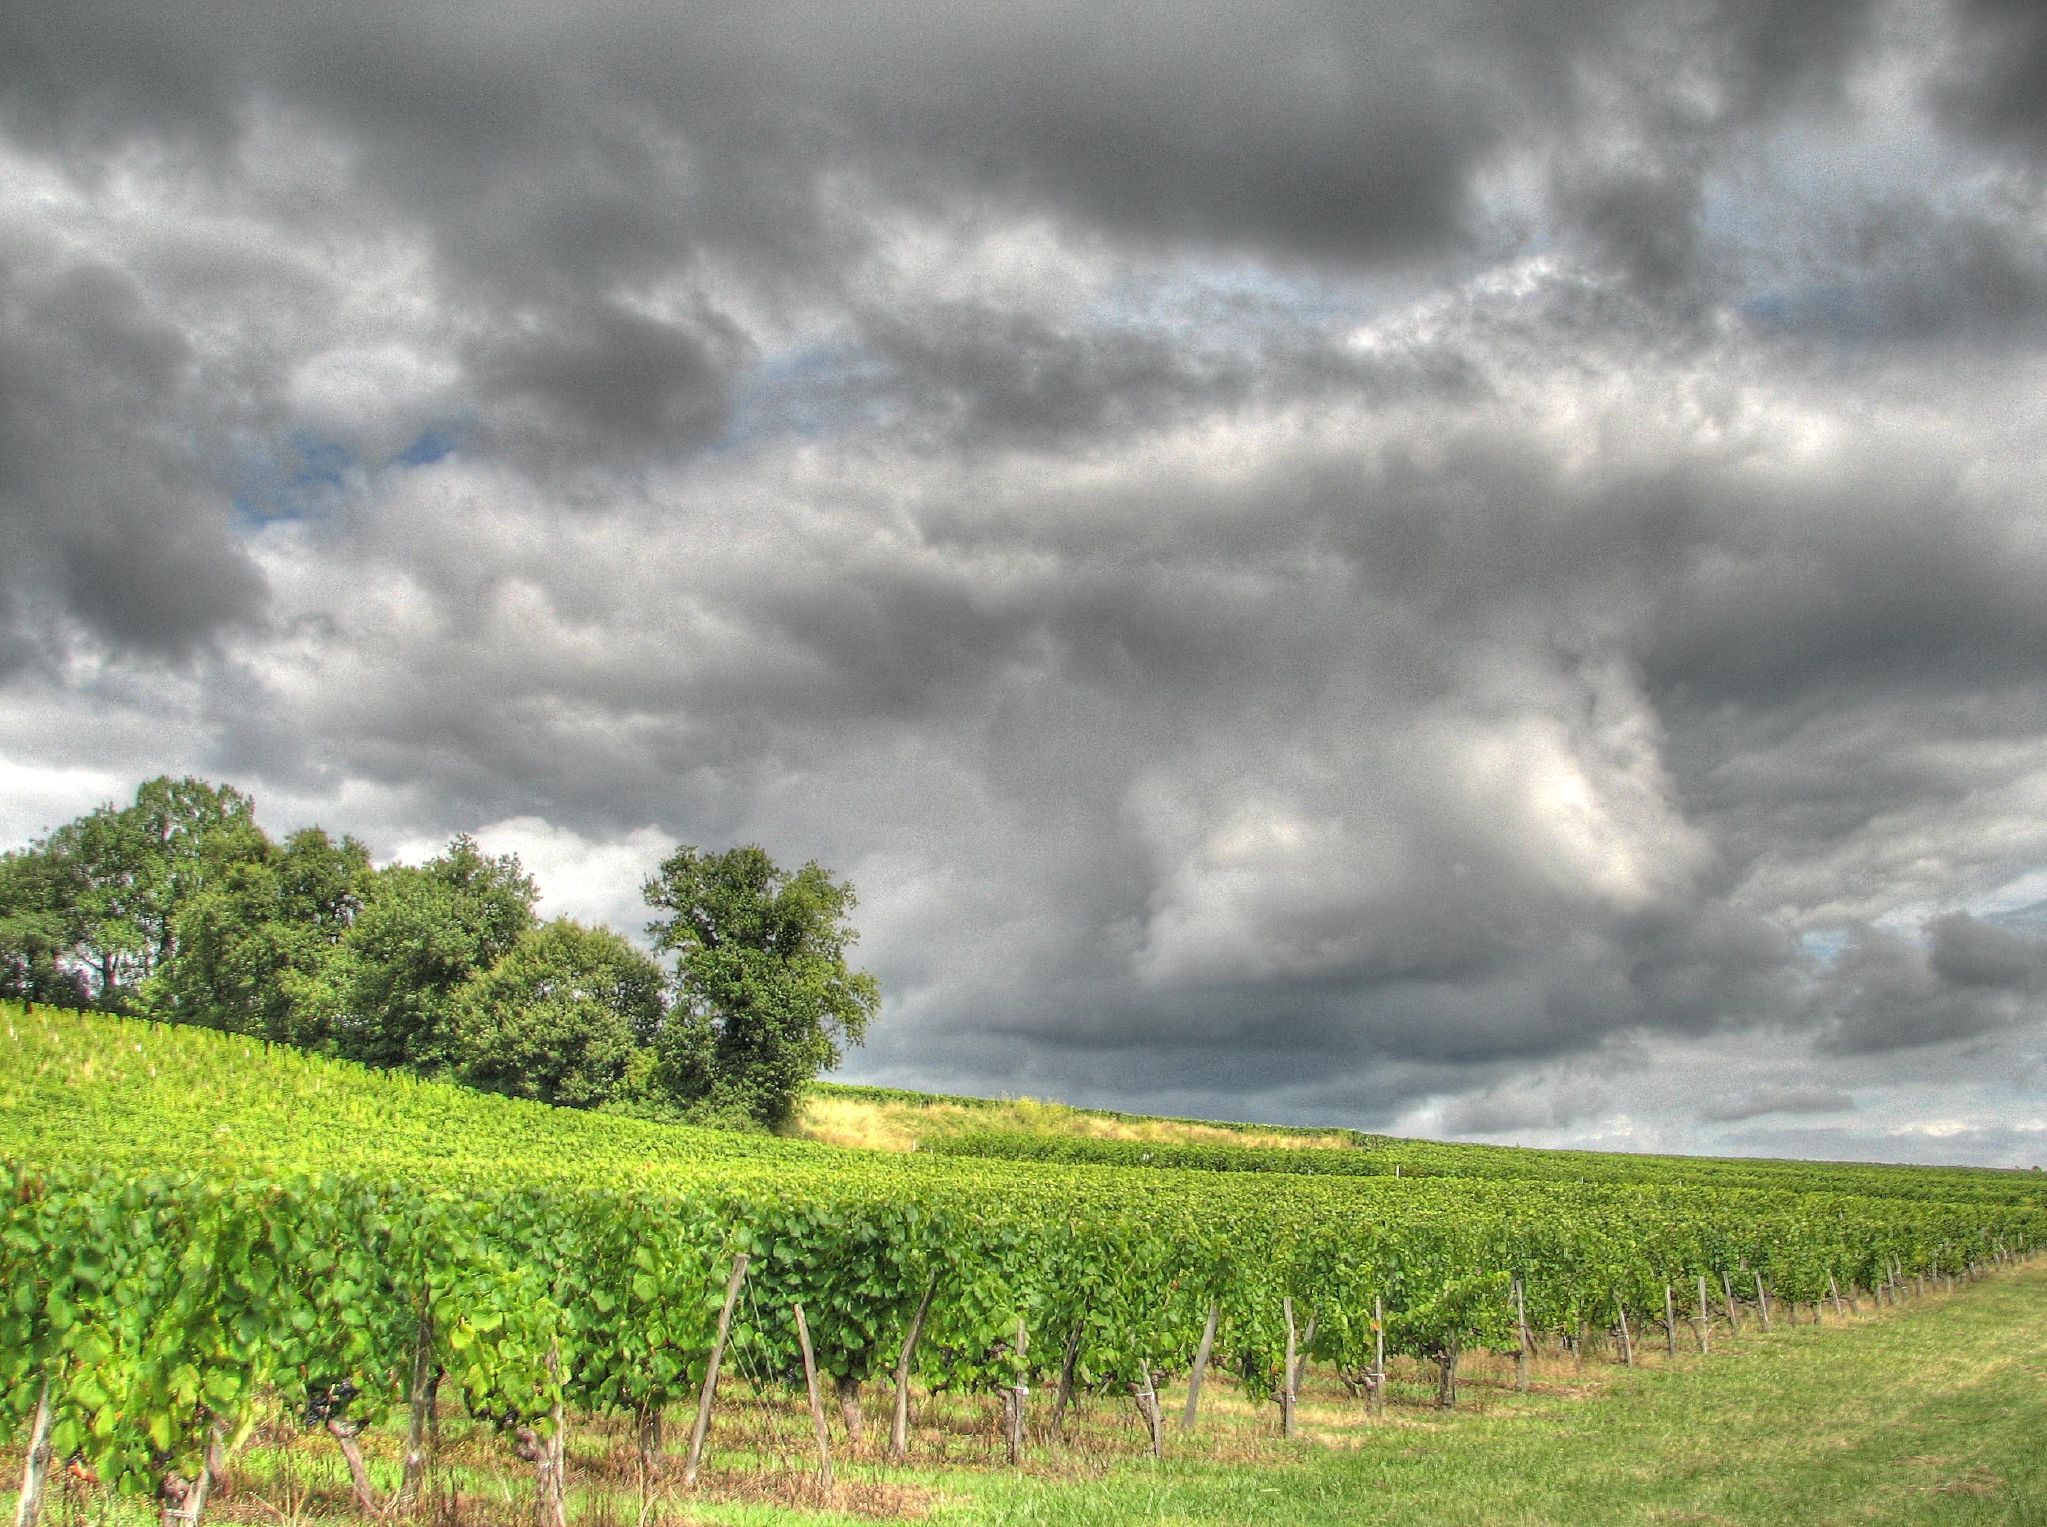 http://commons.wikimedia.org/wiki/File%3ABourg_vineyards.jpg